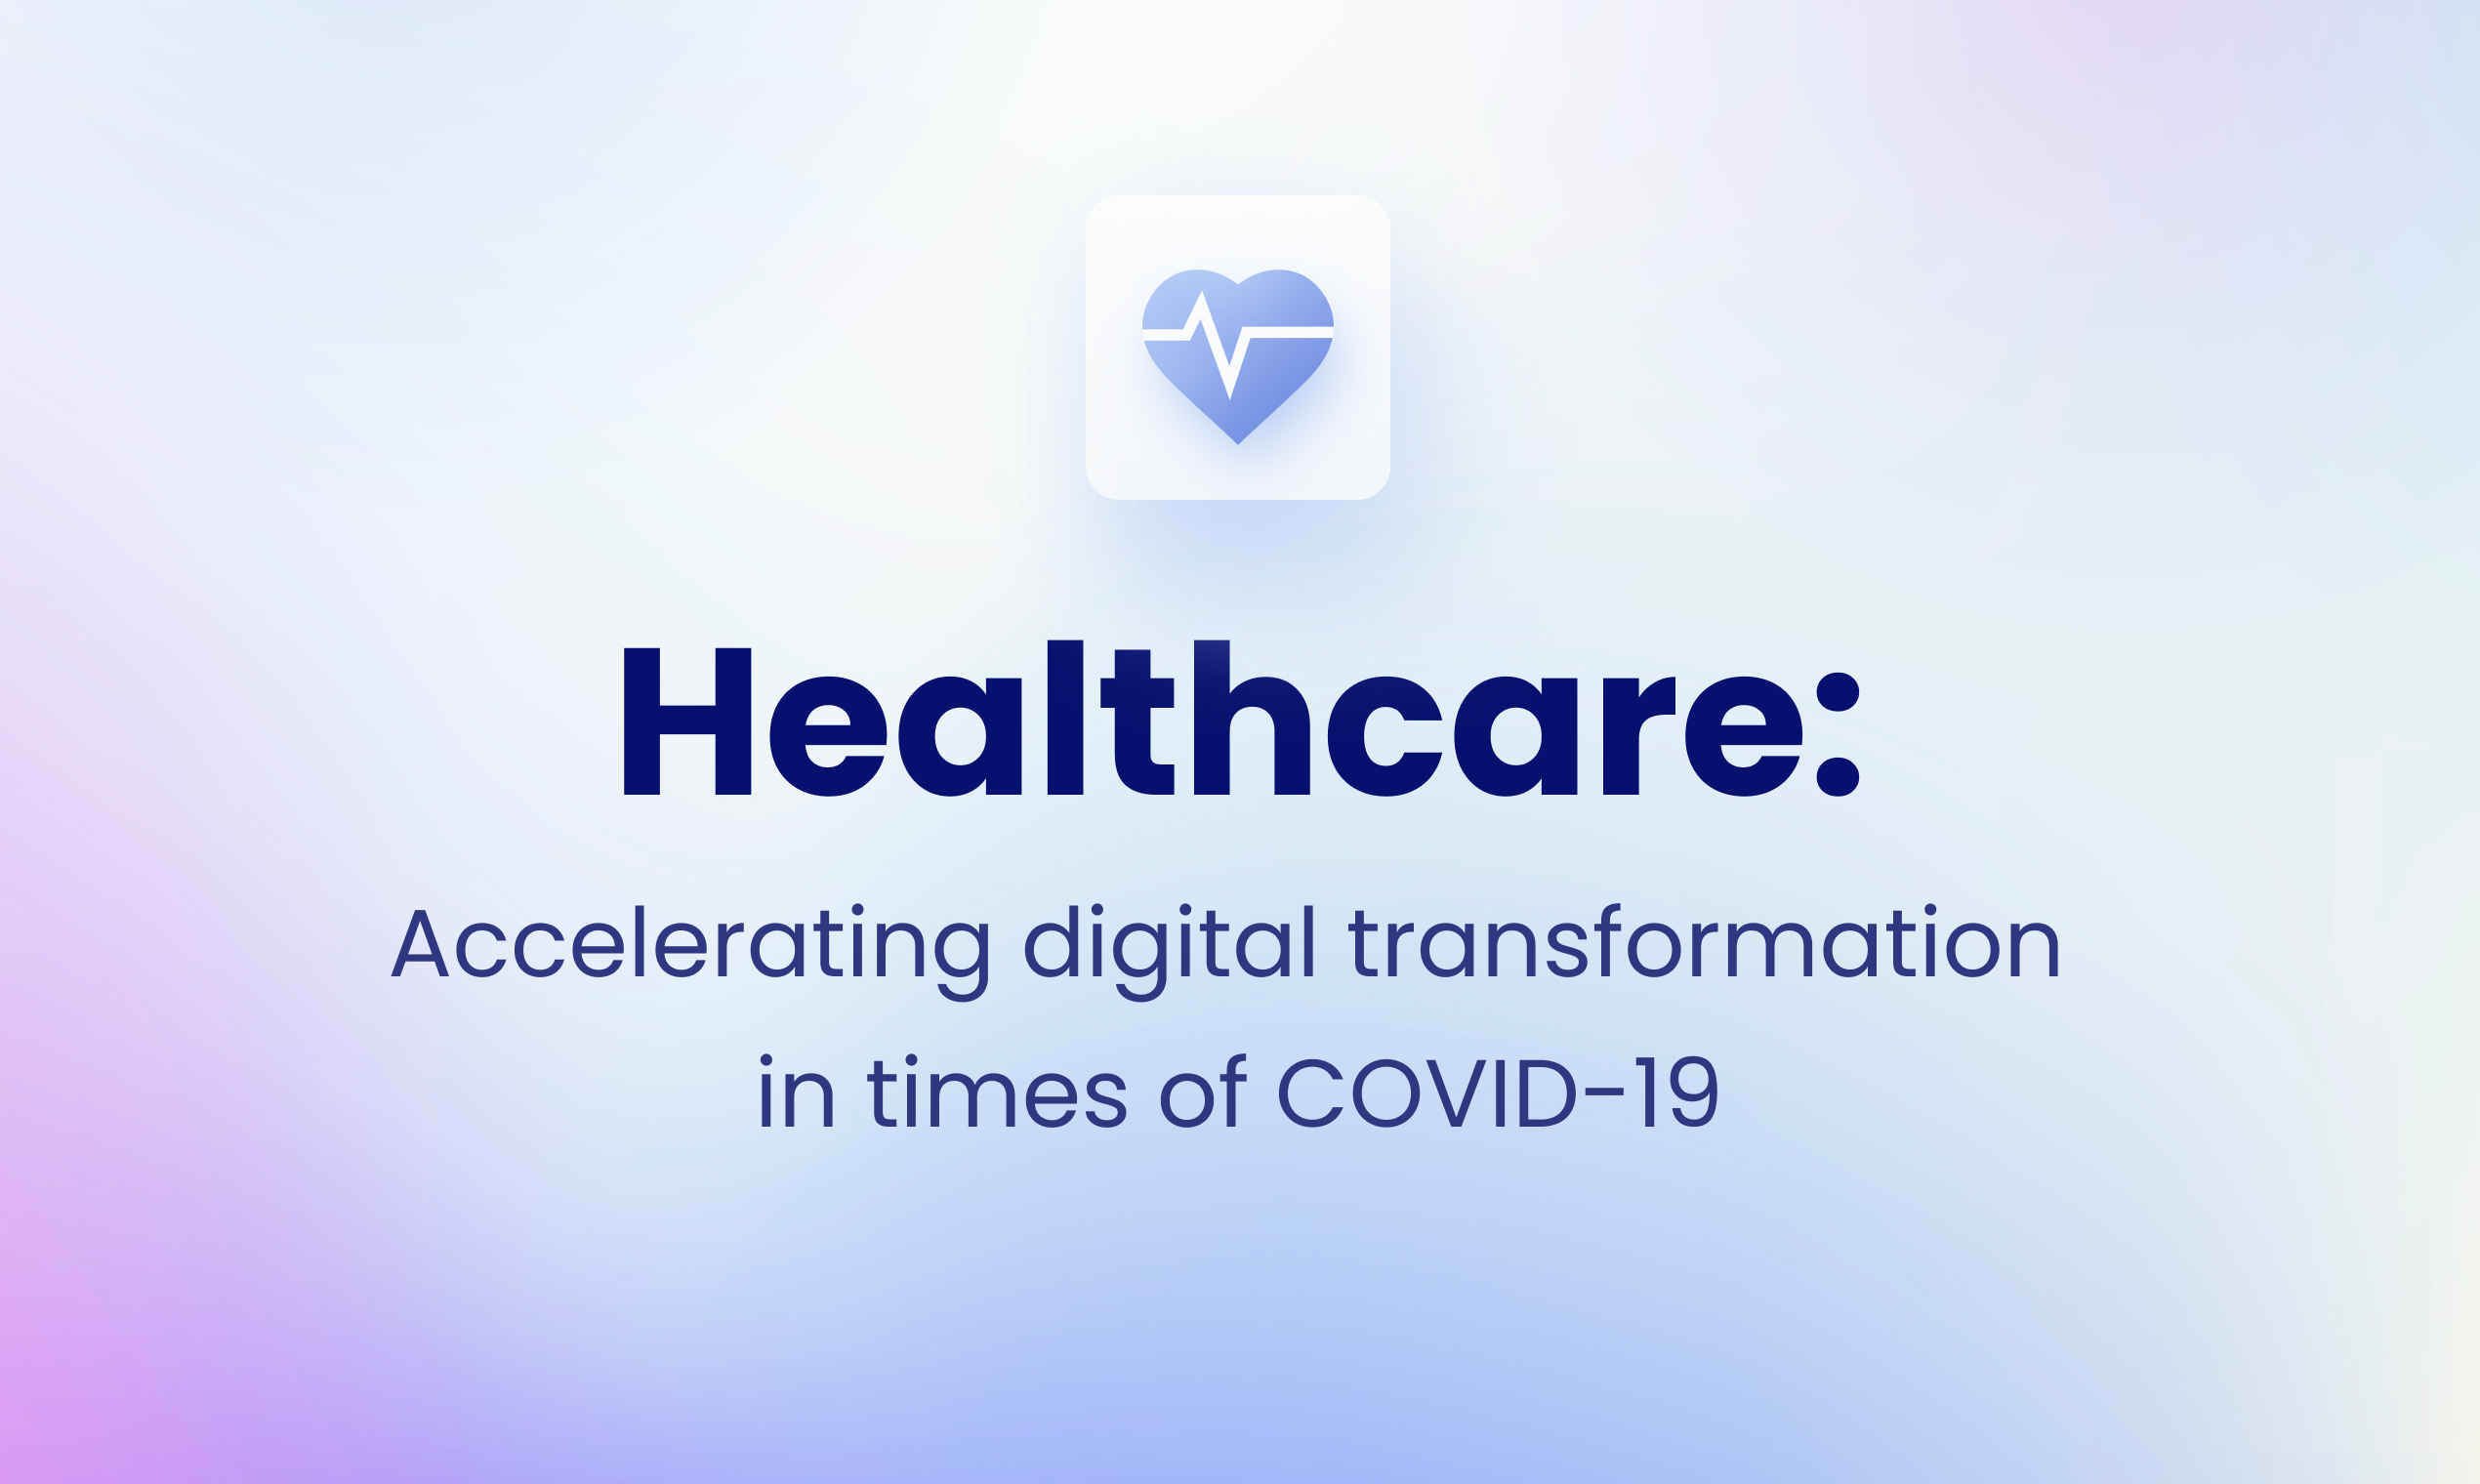 Healthcare in times of COVID